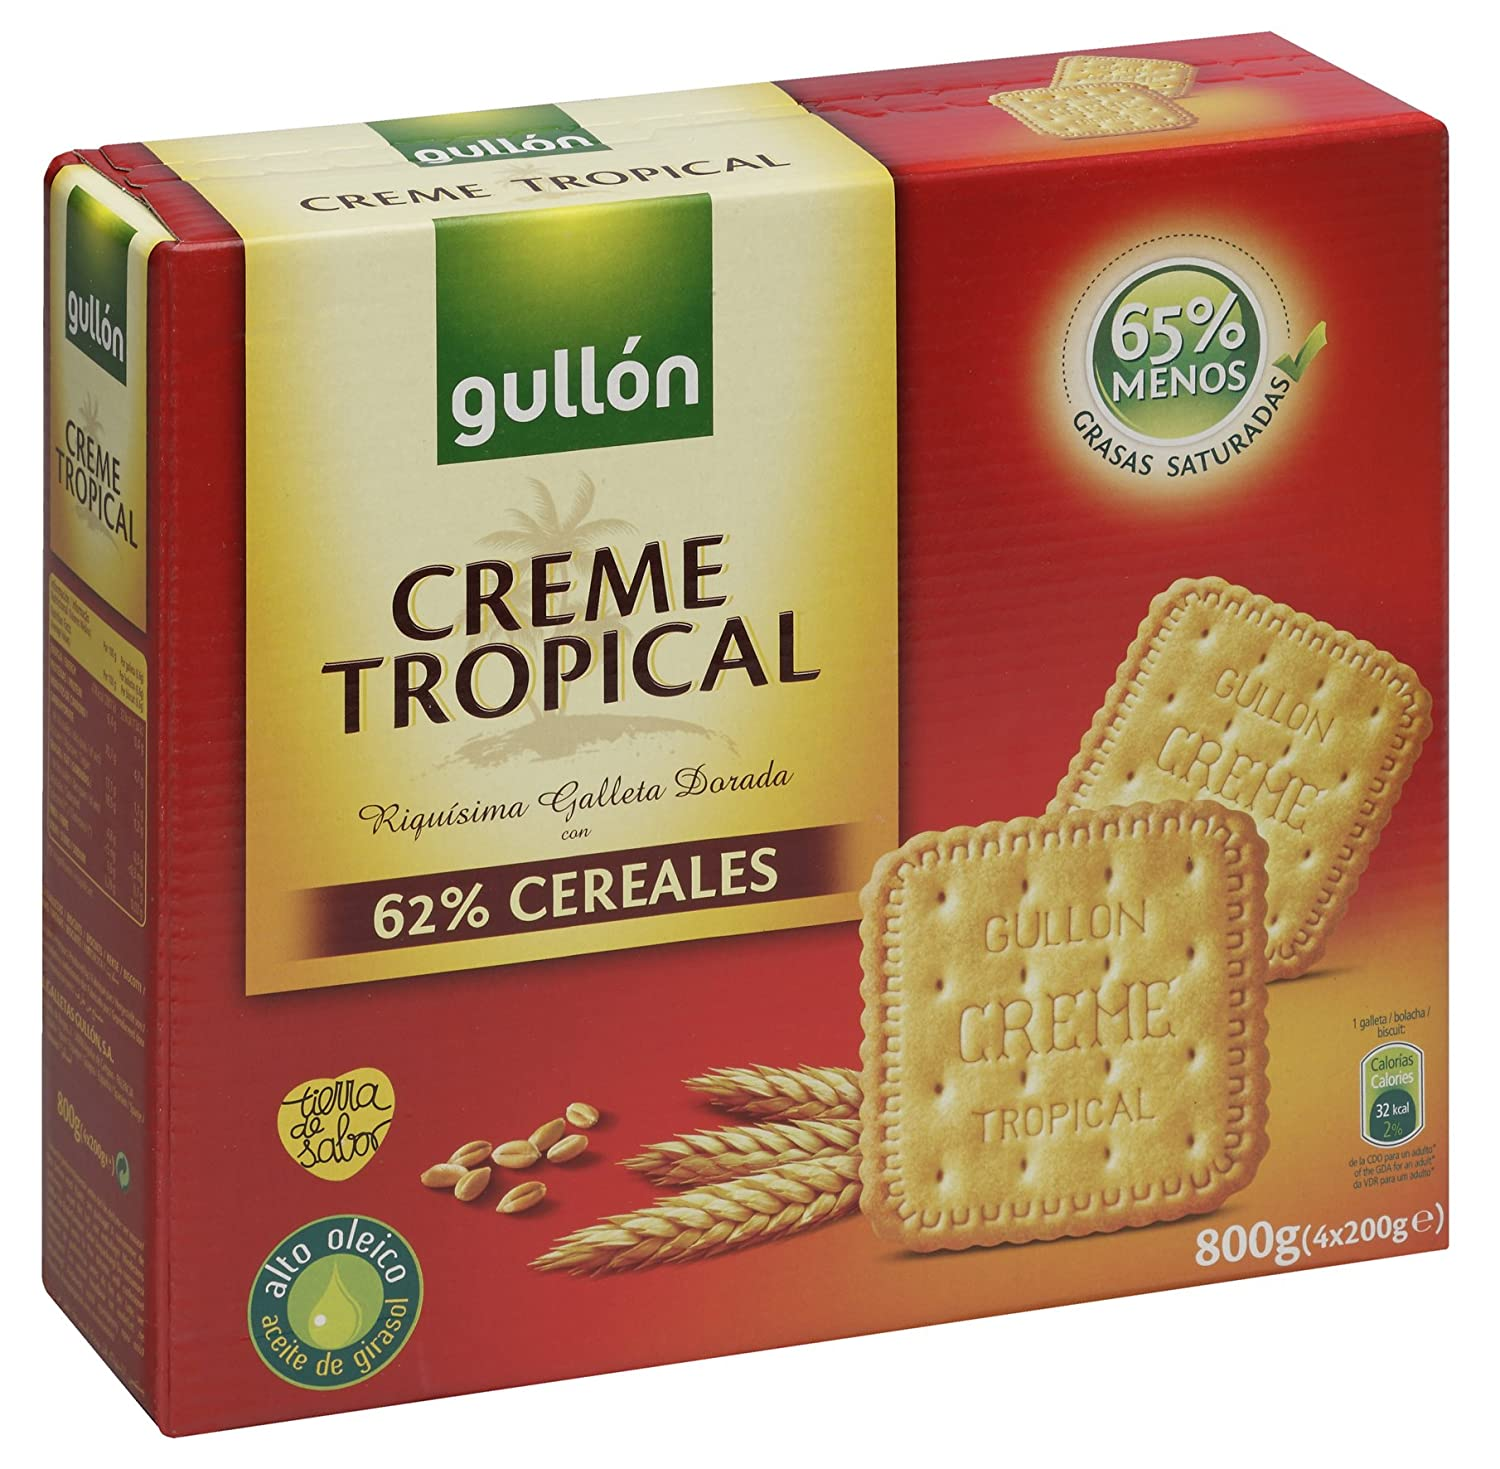 Gullón Creme Tropical Galletas - Pack de 4 x 200 g - Total: 800 g: Amazon.es: Amazon Pantry